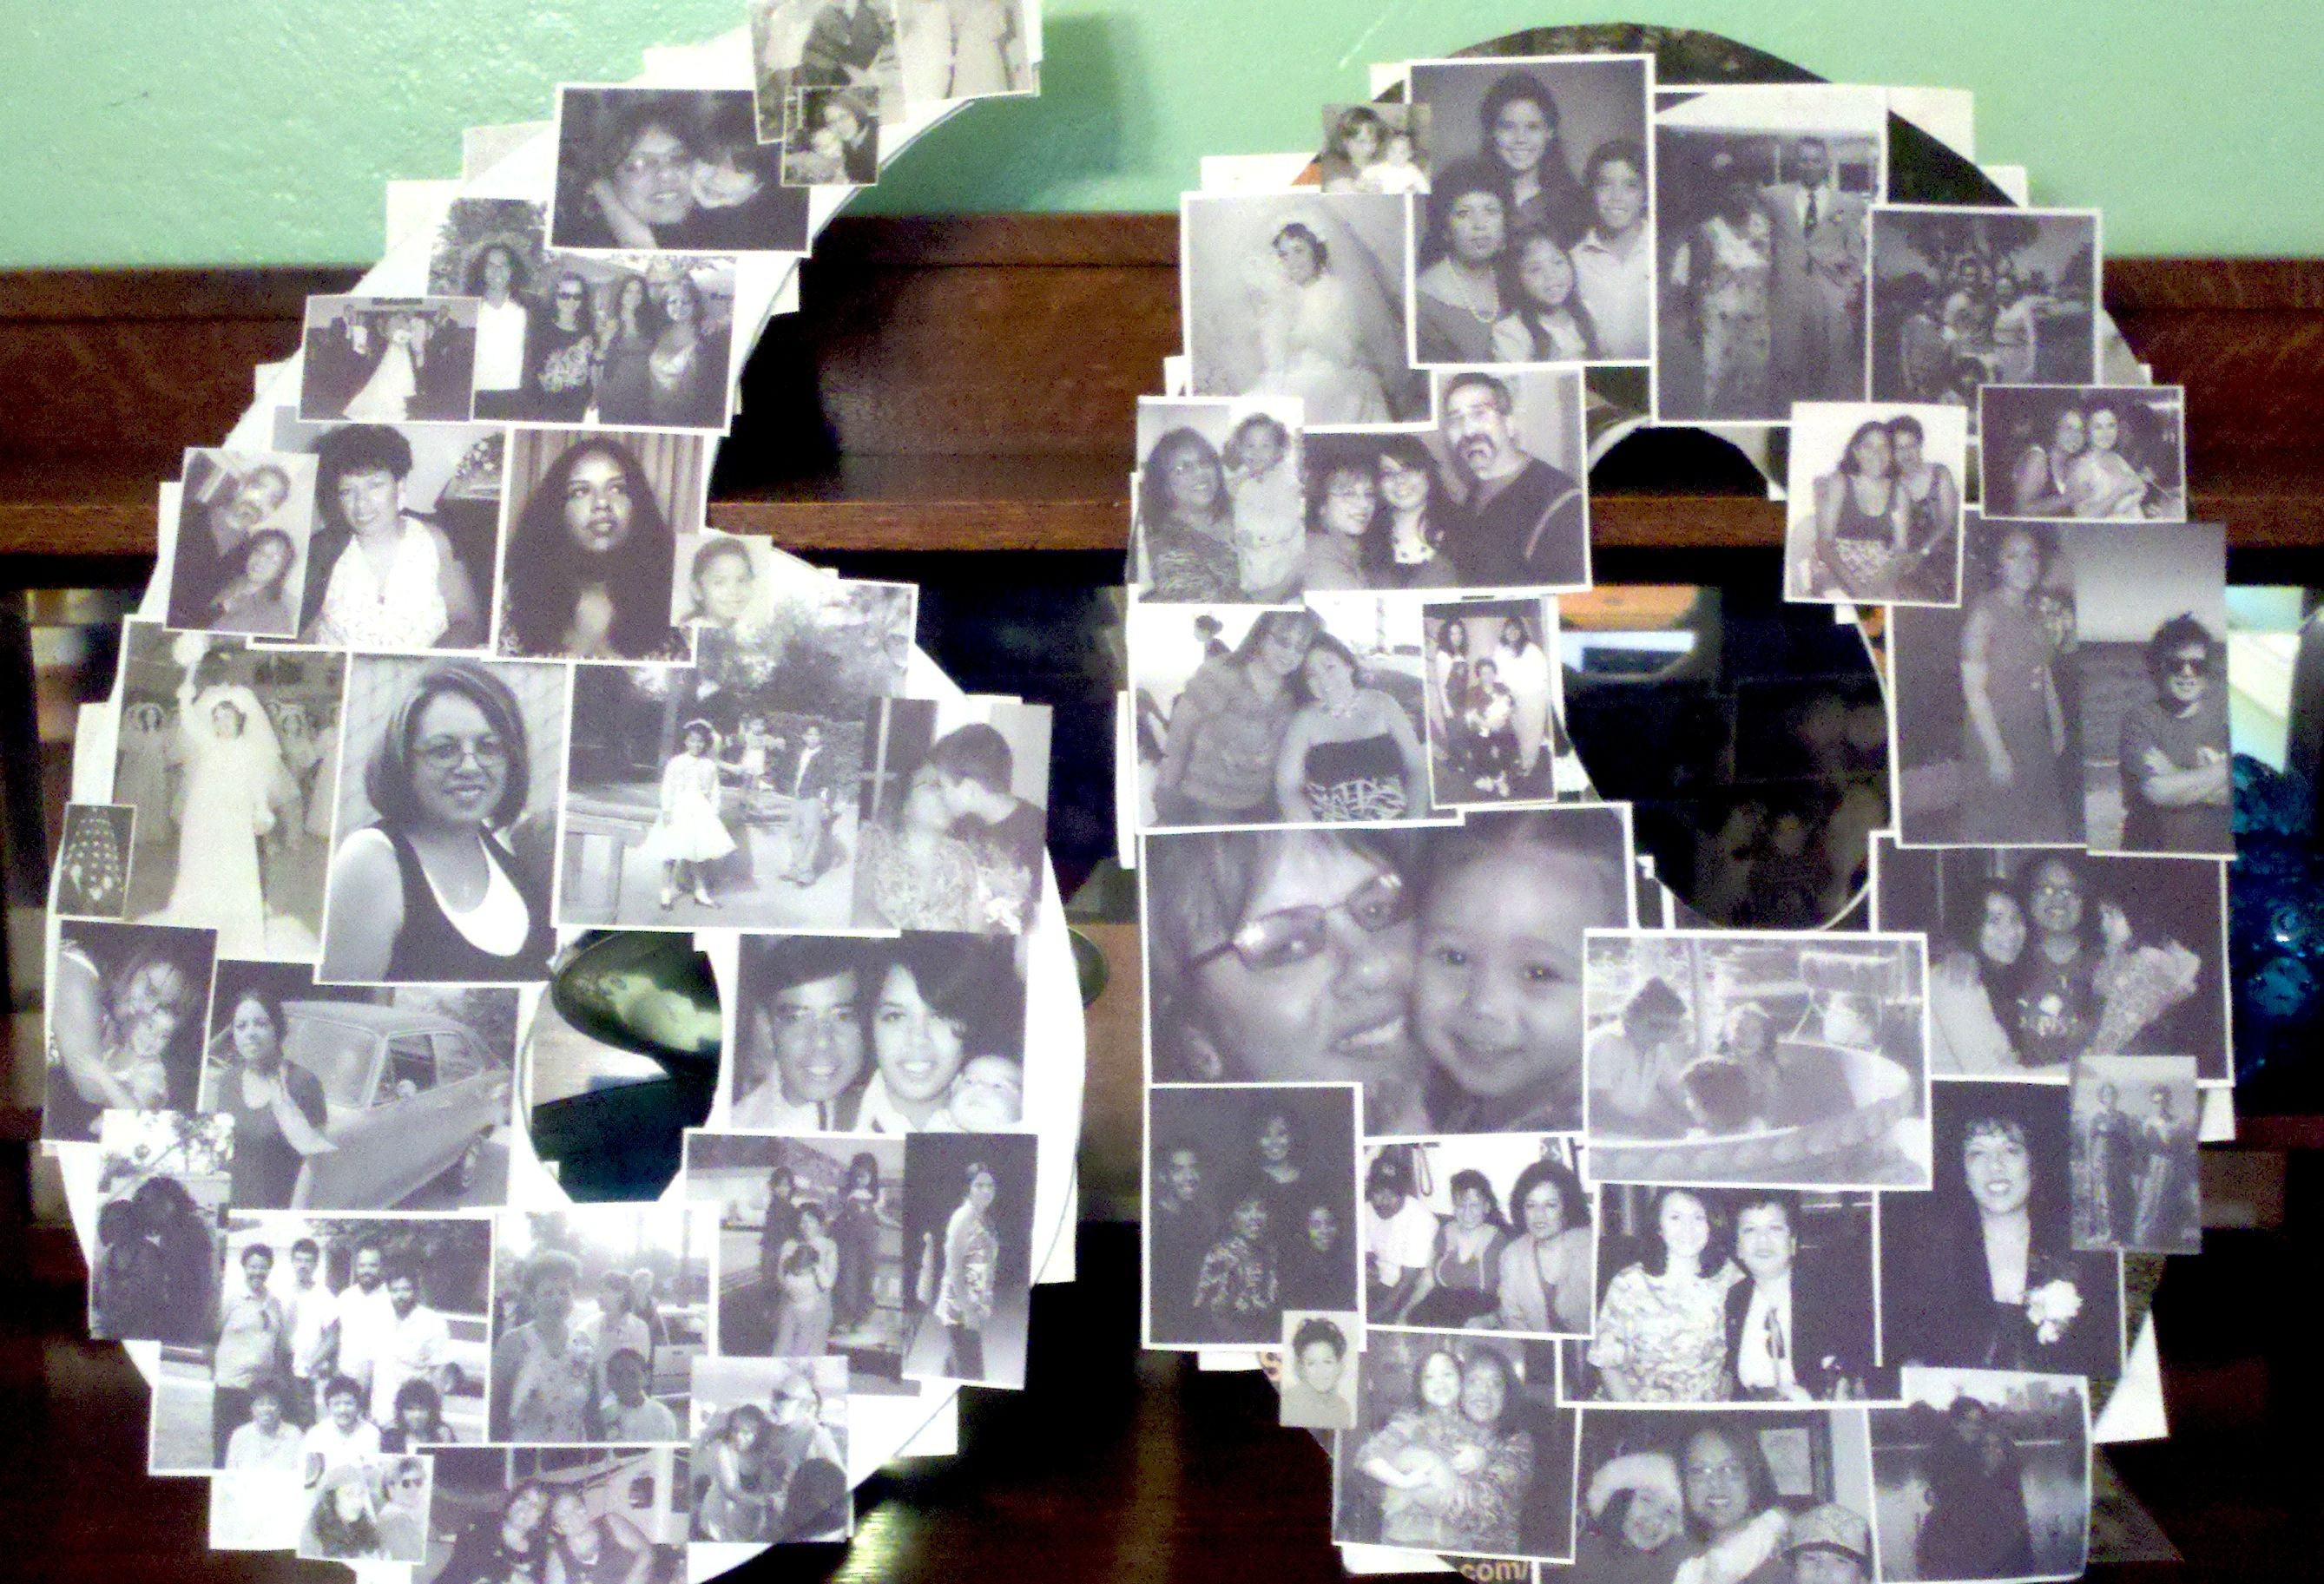 60th birthday photo collage ideas ; ideas-for-60th-birthday-party-best-of-happy-60th-collage-party-decoration-of-ideas-for-60th-birthday-party